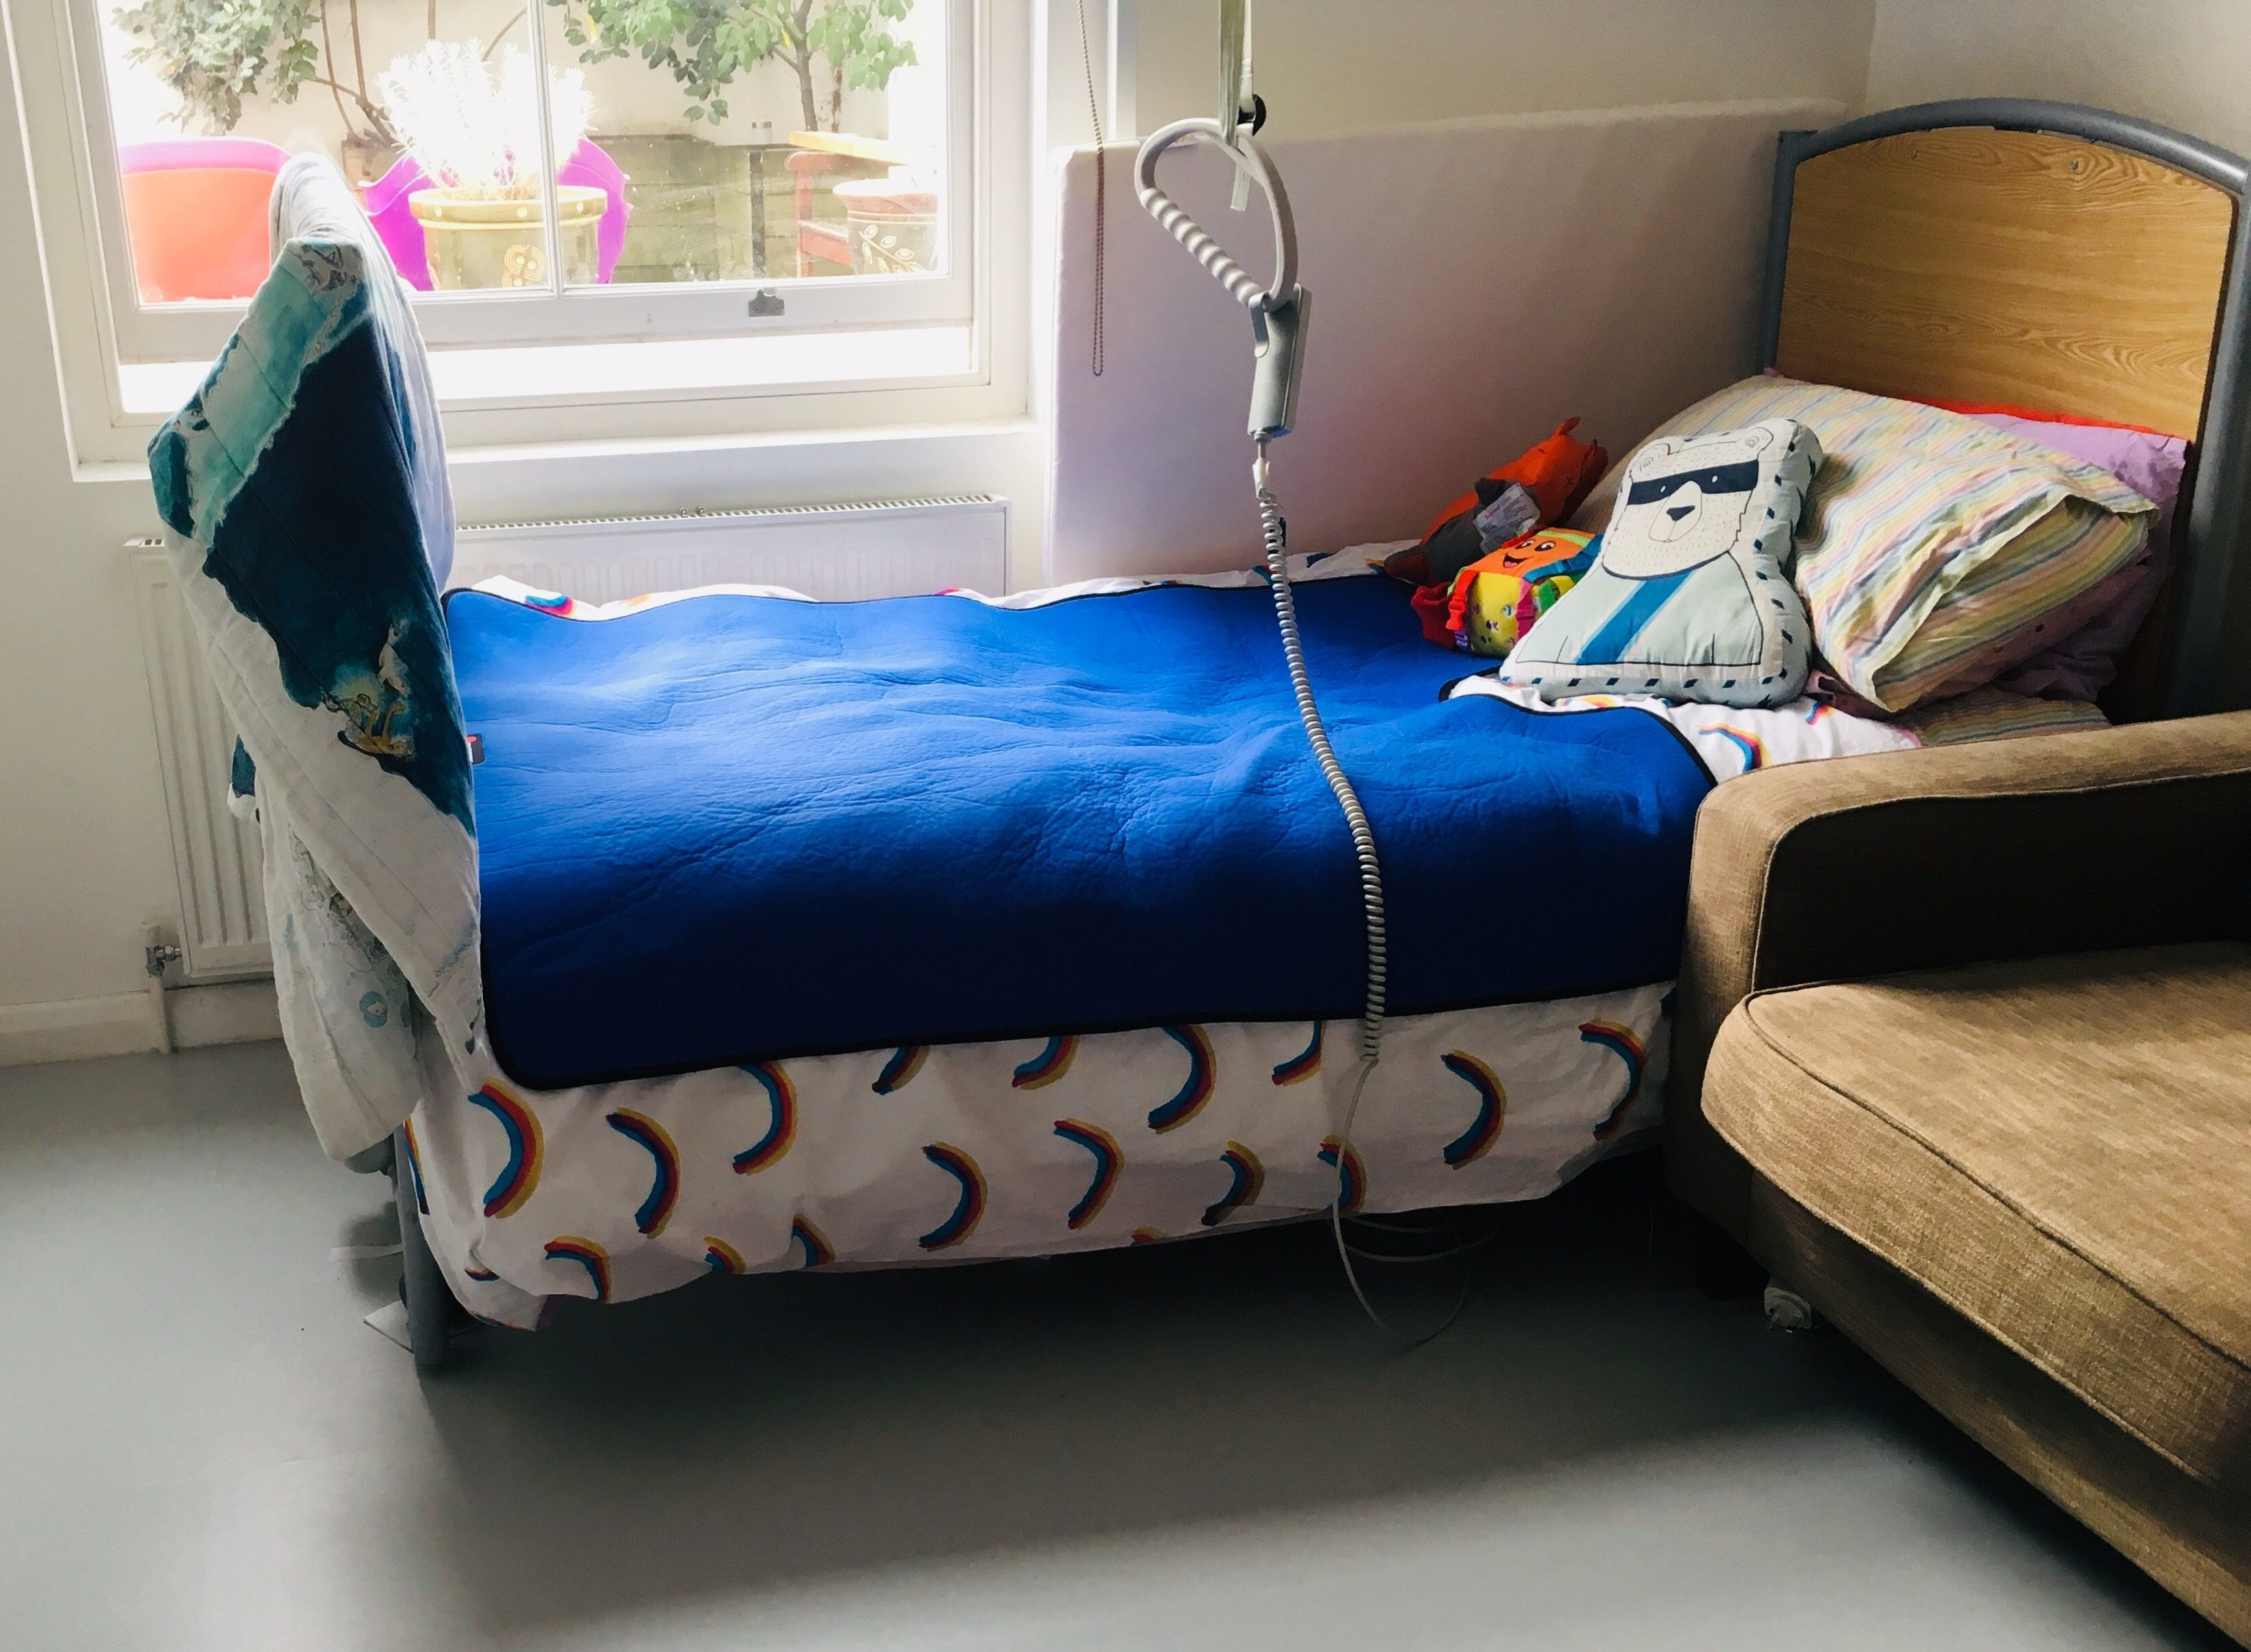 Photo of Touretteshero's profiling bed along with royal blue weighted blanket on top. The bed is next to a window looking out into a garden.